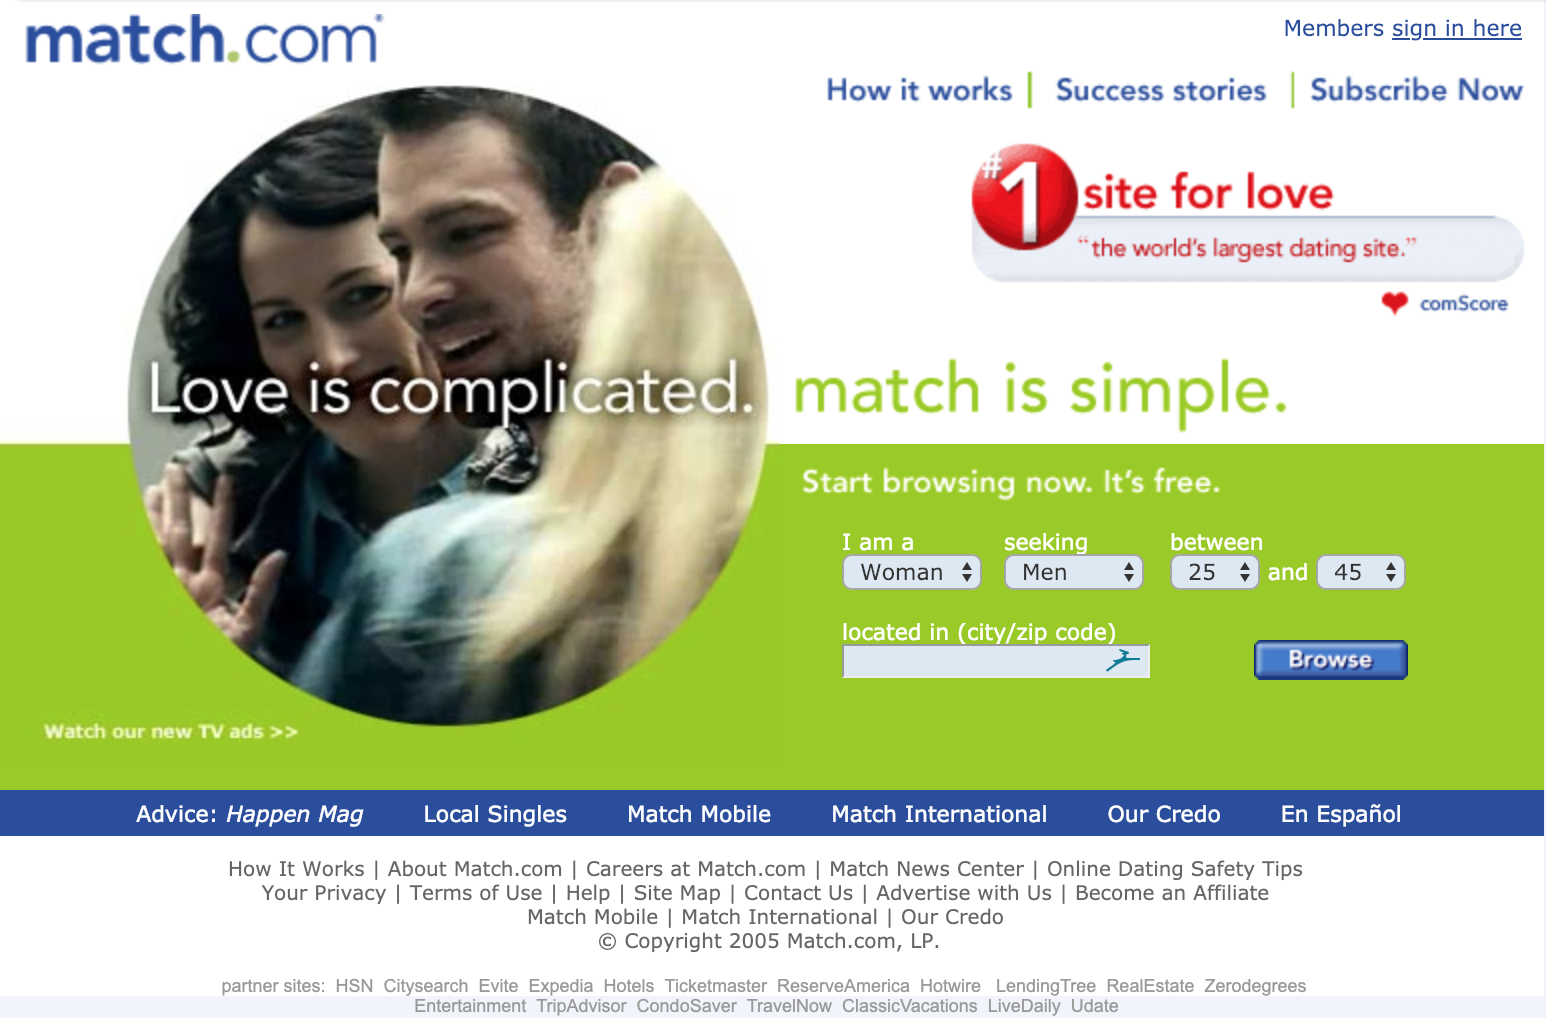 Match.com dating safety tips